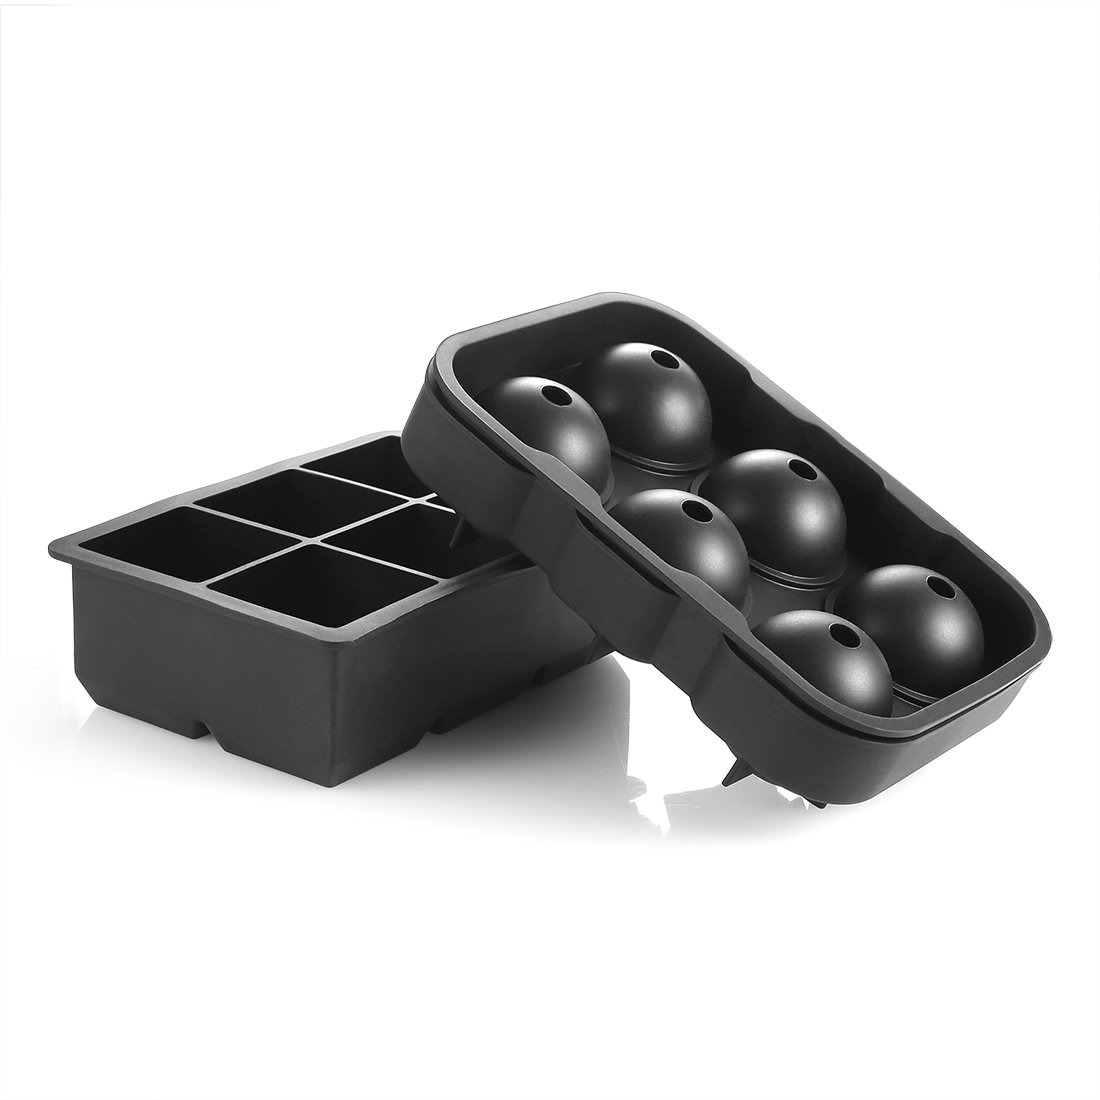 Ice Mold Better-Nee Large Ice Cube Trays Silicone Sphere Black Flexible Ice Ball Maker & Square Cubes Tary BPA Free Reusable Set of 2